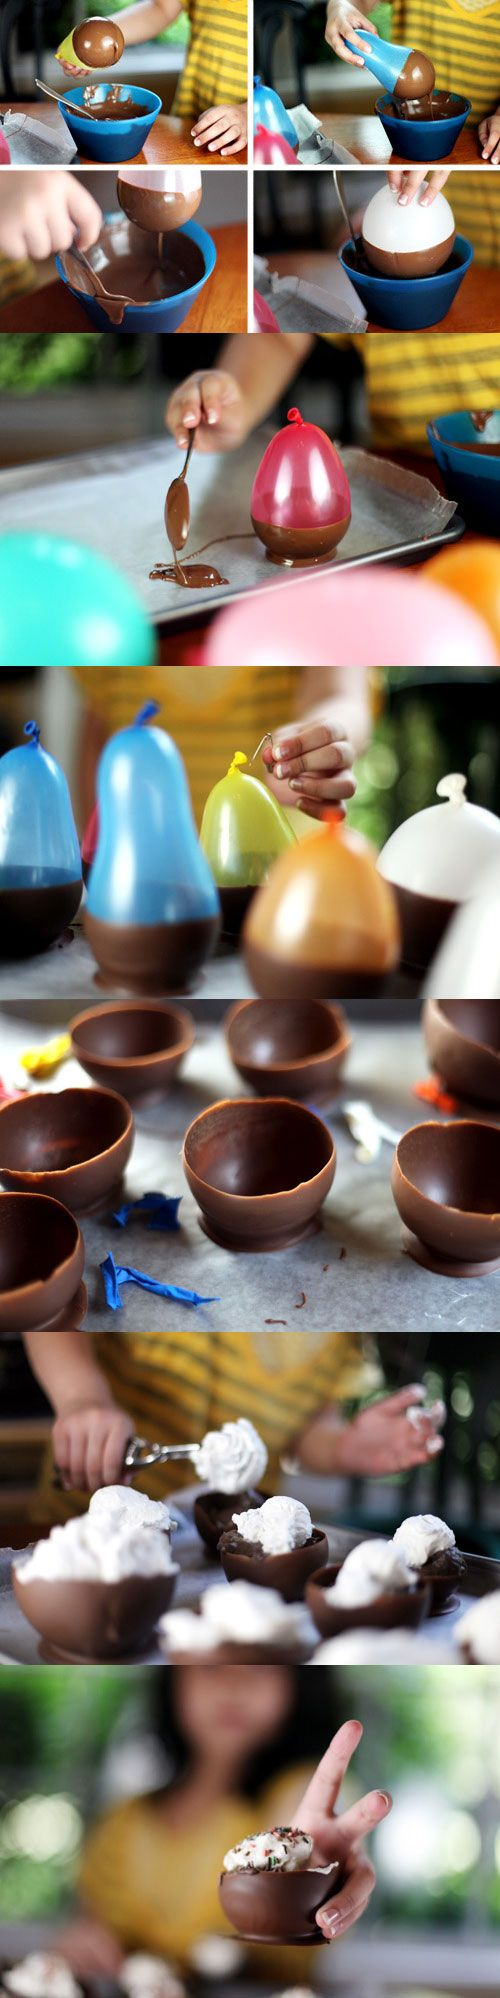 make your own chocolate cup to eat ice cream (and other delights) in